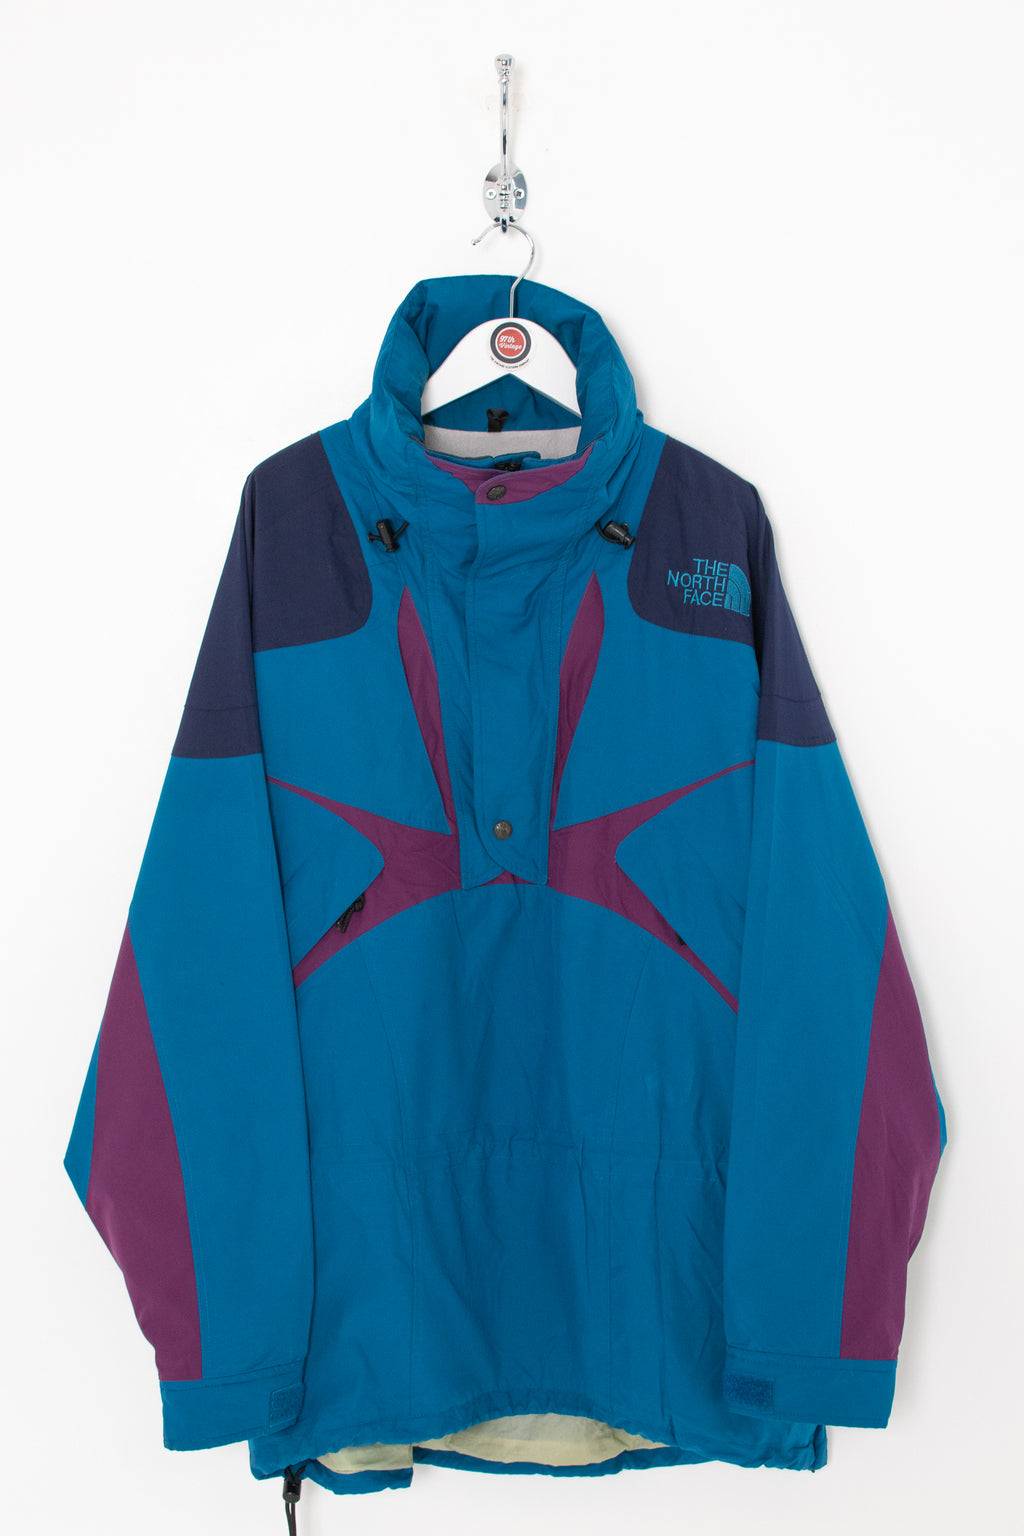 The North Face Windbreaker (L)